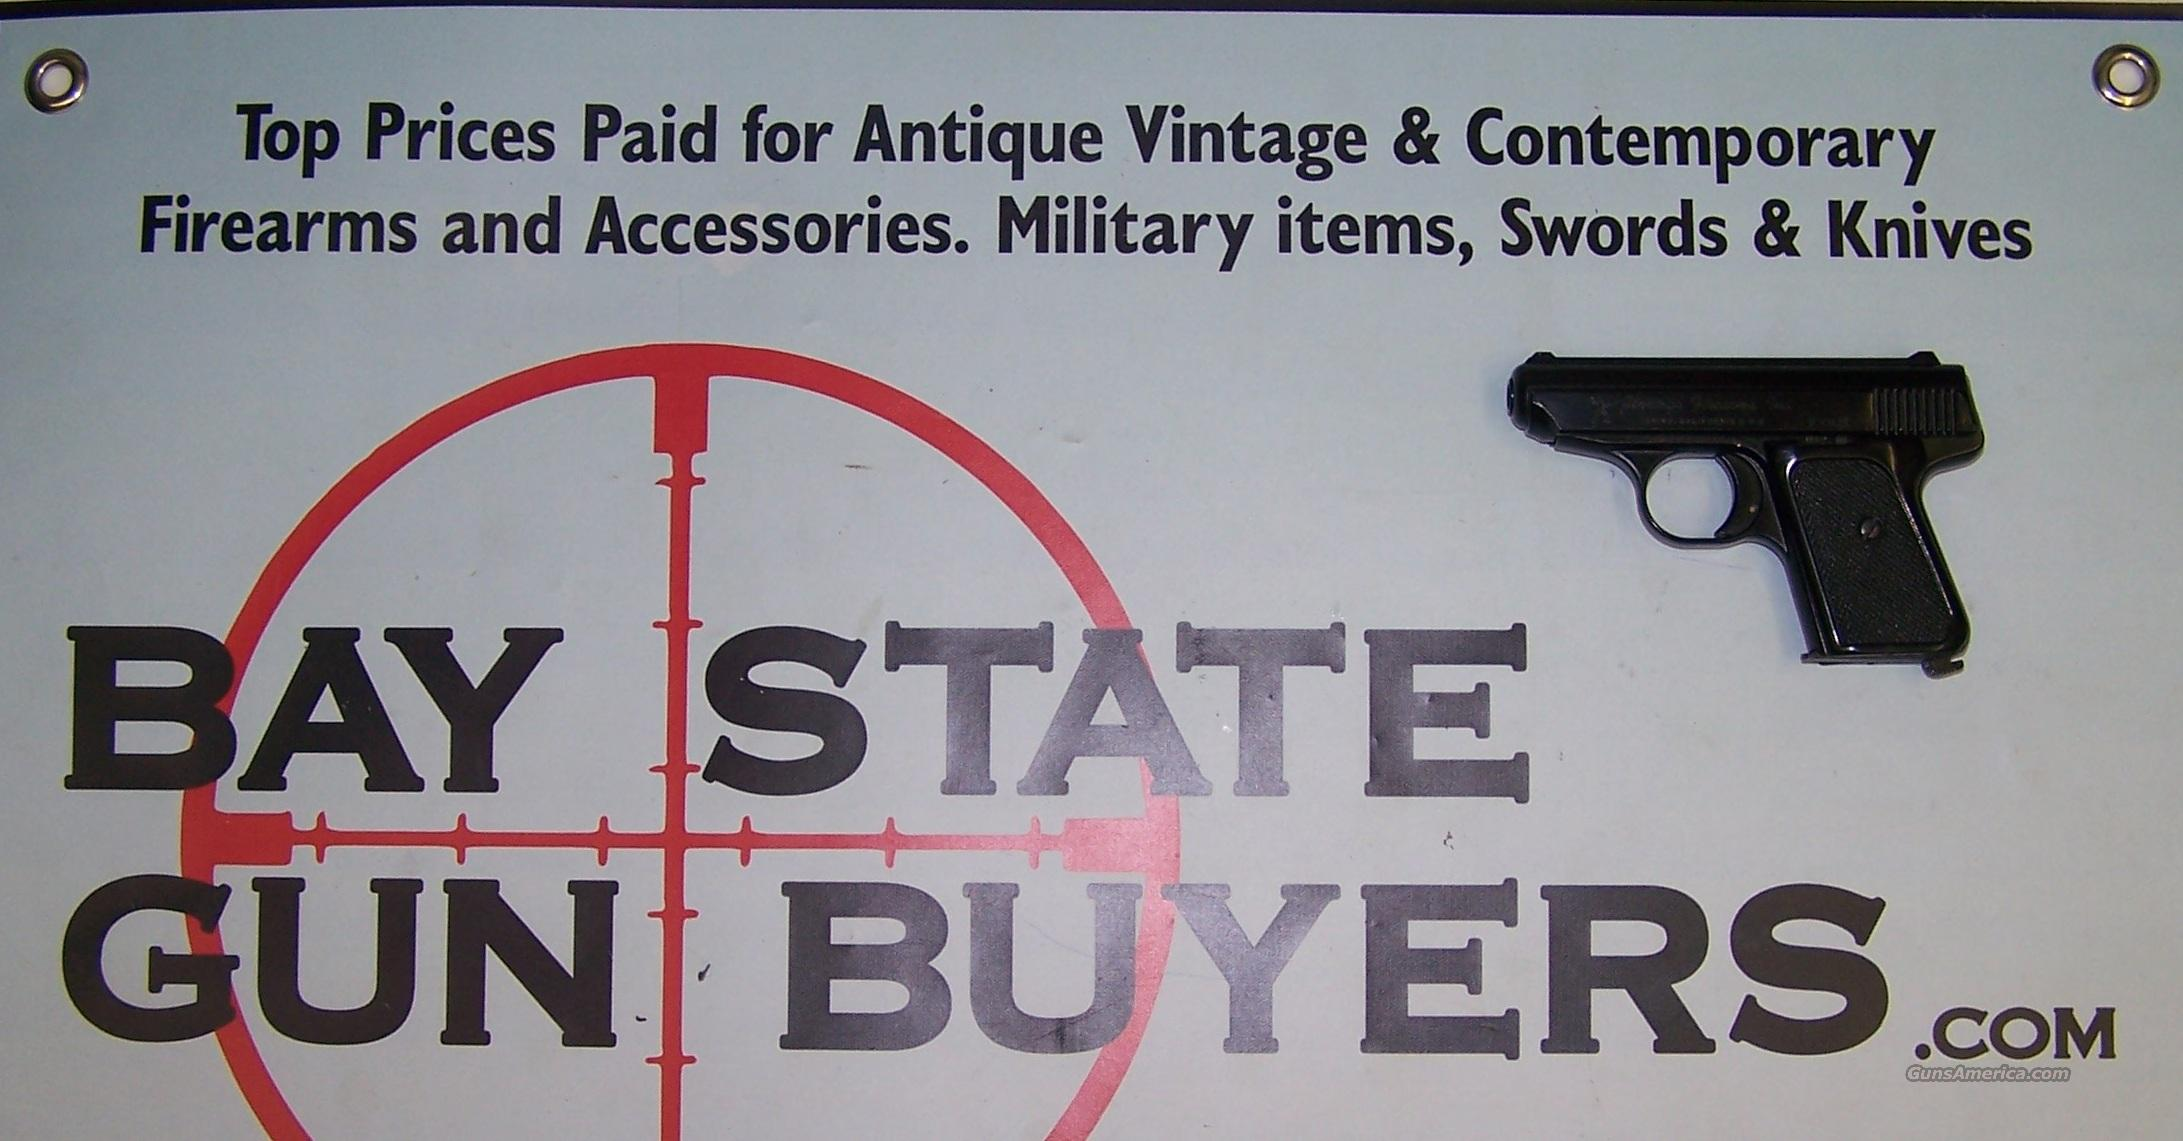 Jennings J-22 Semi-auto .22LR pistol LIKE NEW IN ORIGINAL BOX  Guns > Pistols > Jennings Pistols